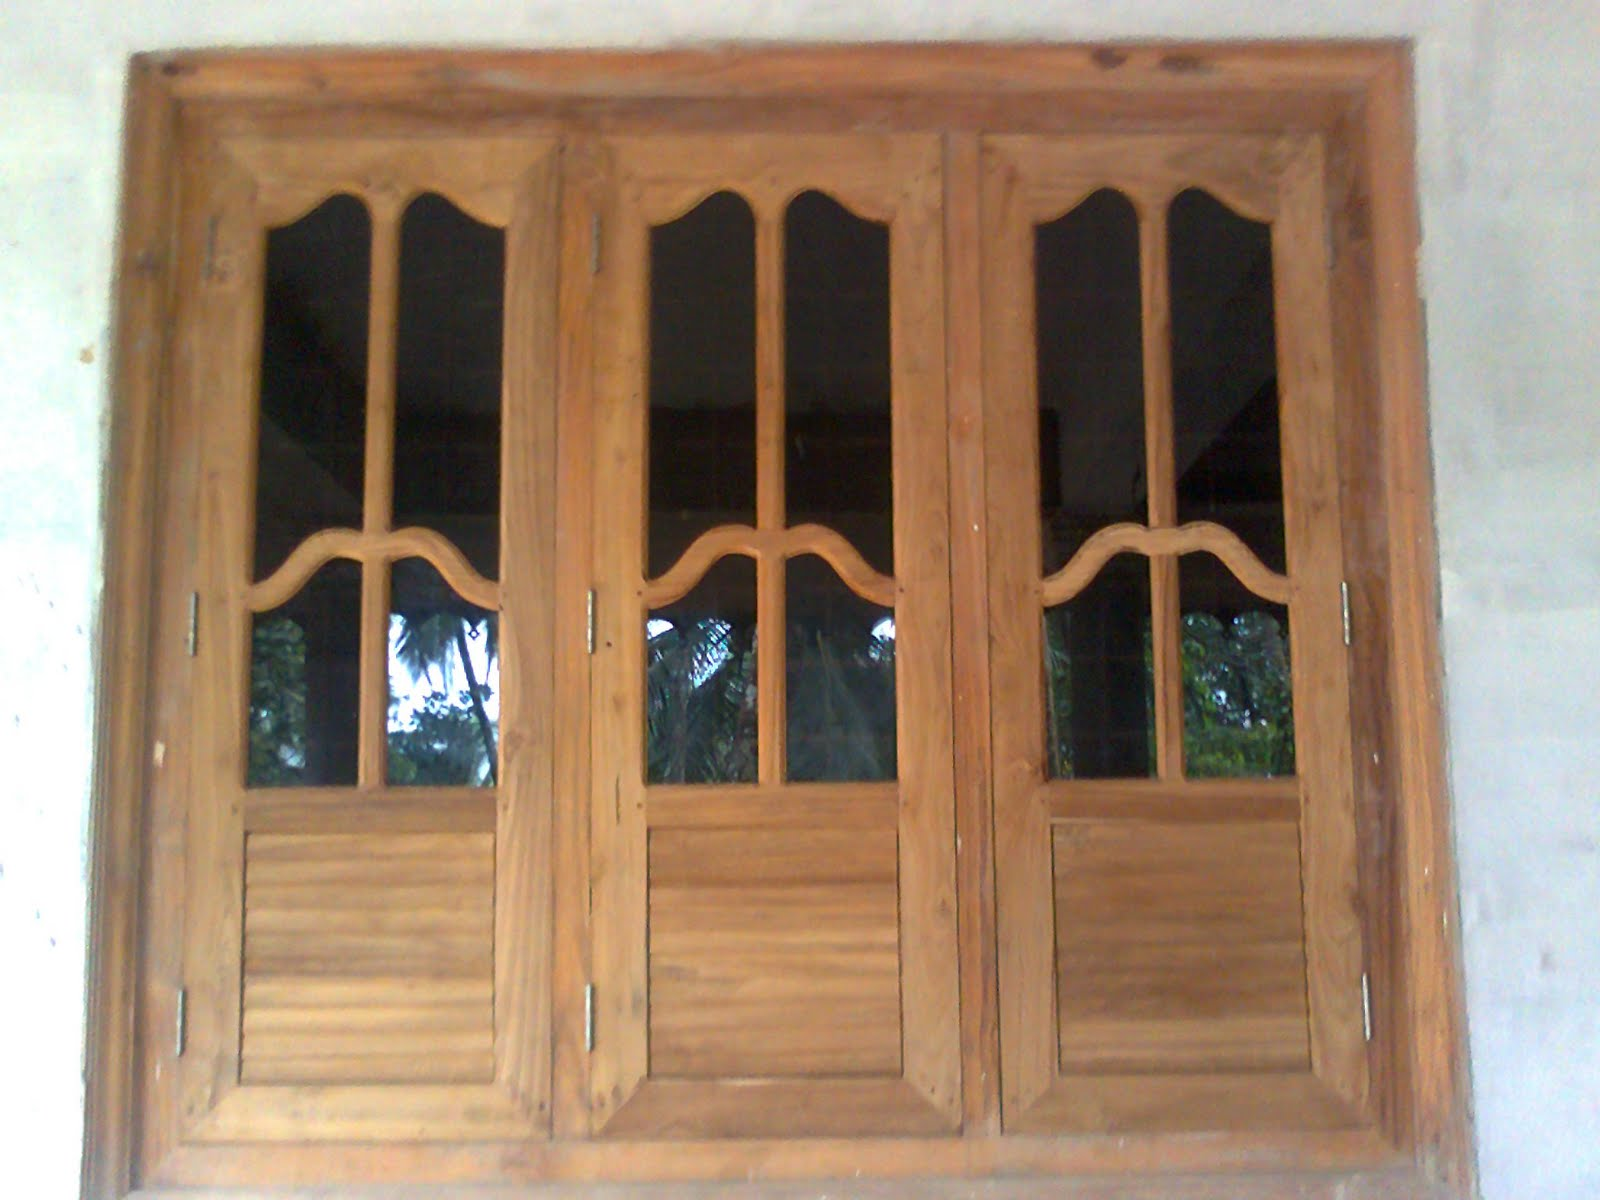 Bavas wood works wooden window doors simple designs for New windows and doors